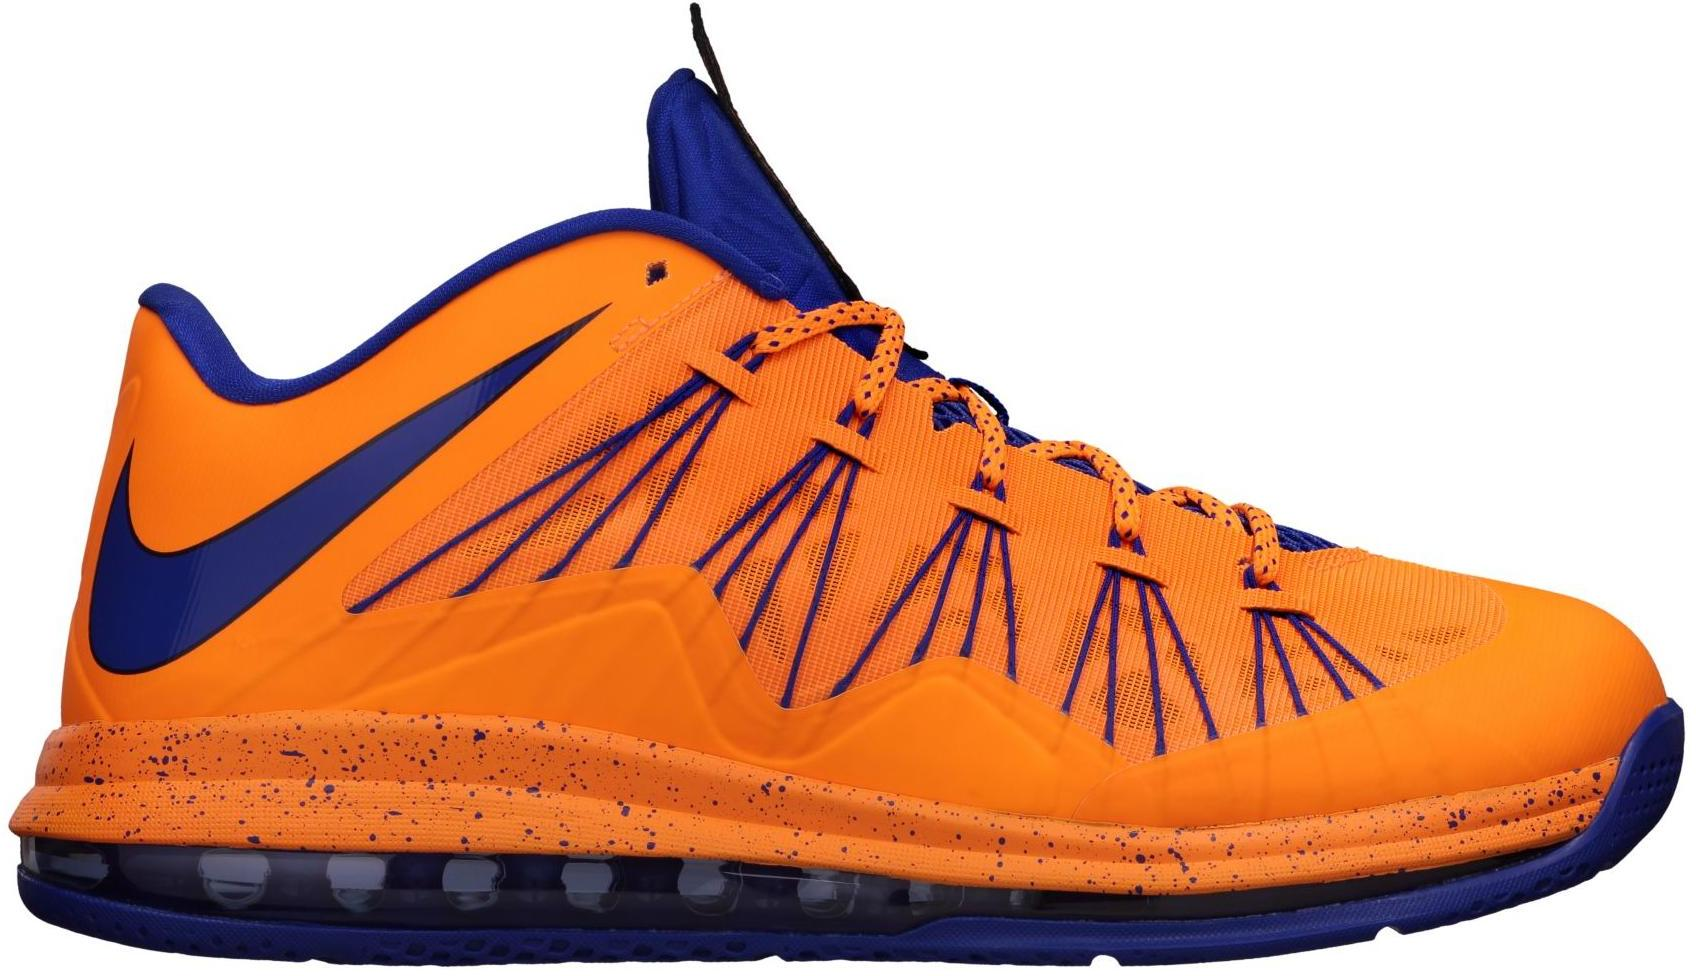 f44c3a822809 ... wholesale buy nike lebron 10 shoes deadstock sneakers 4d5ee 9576c